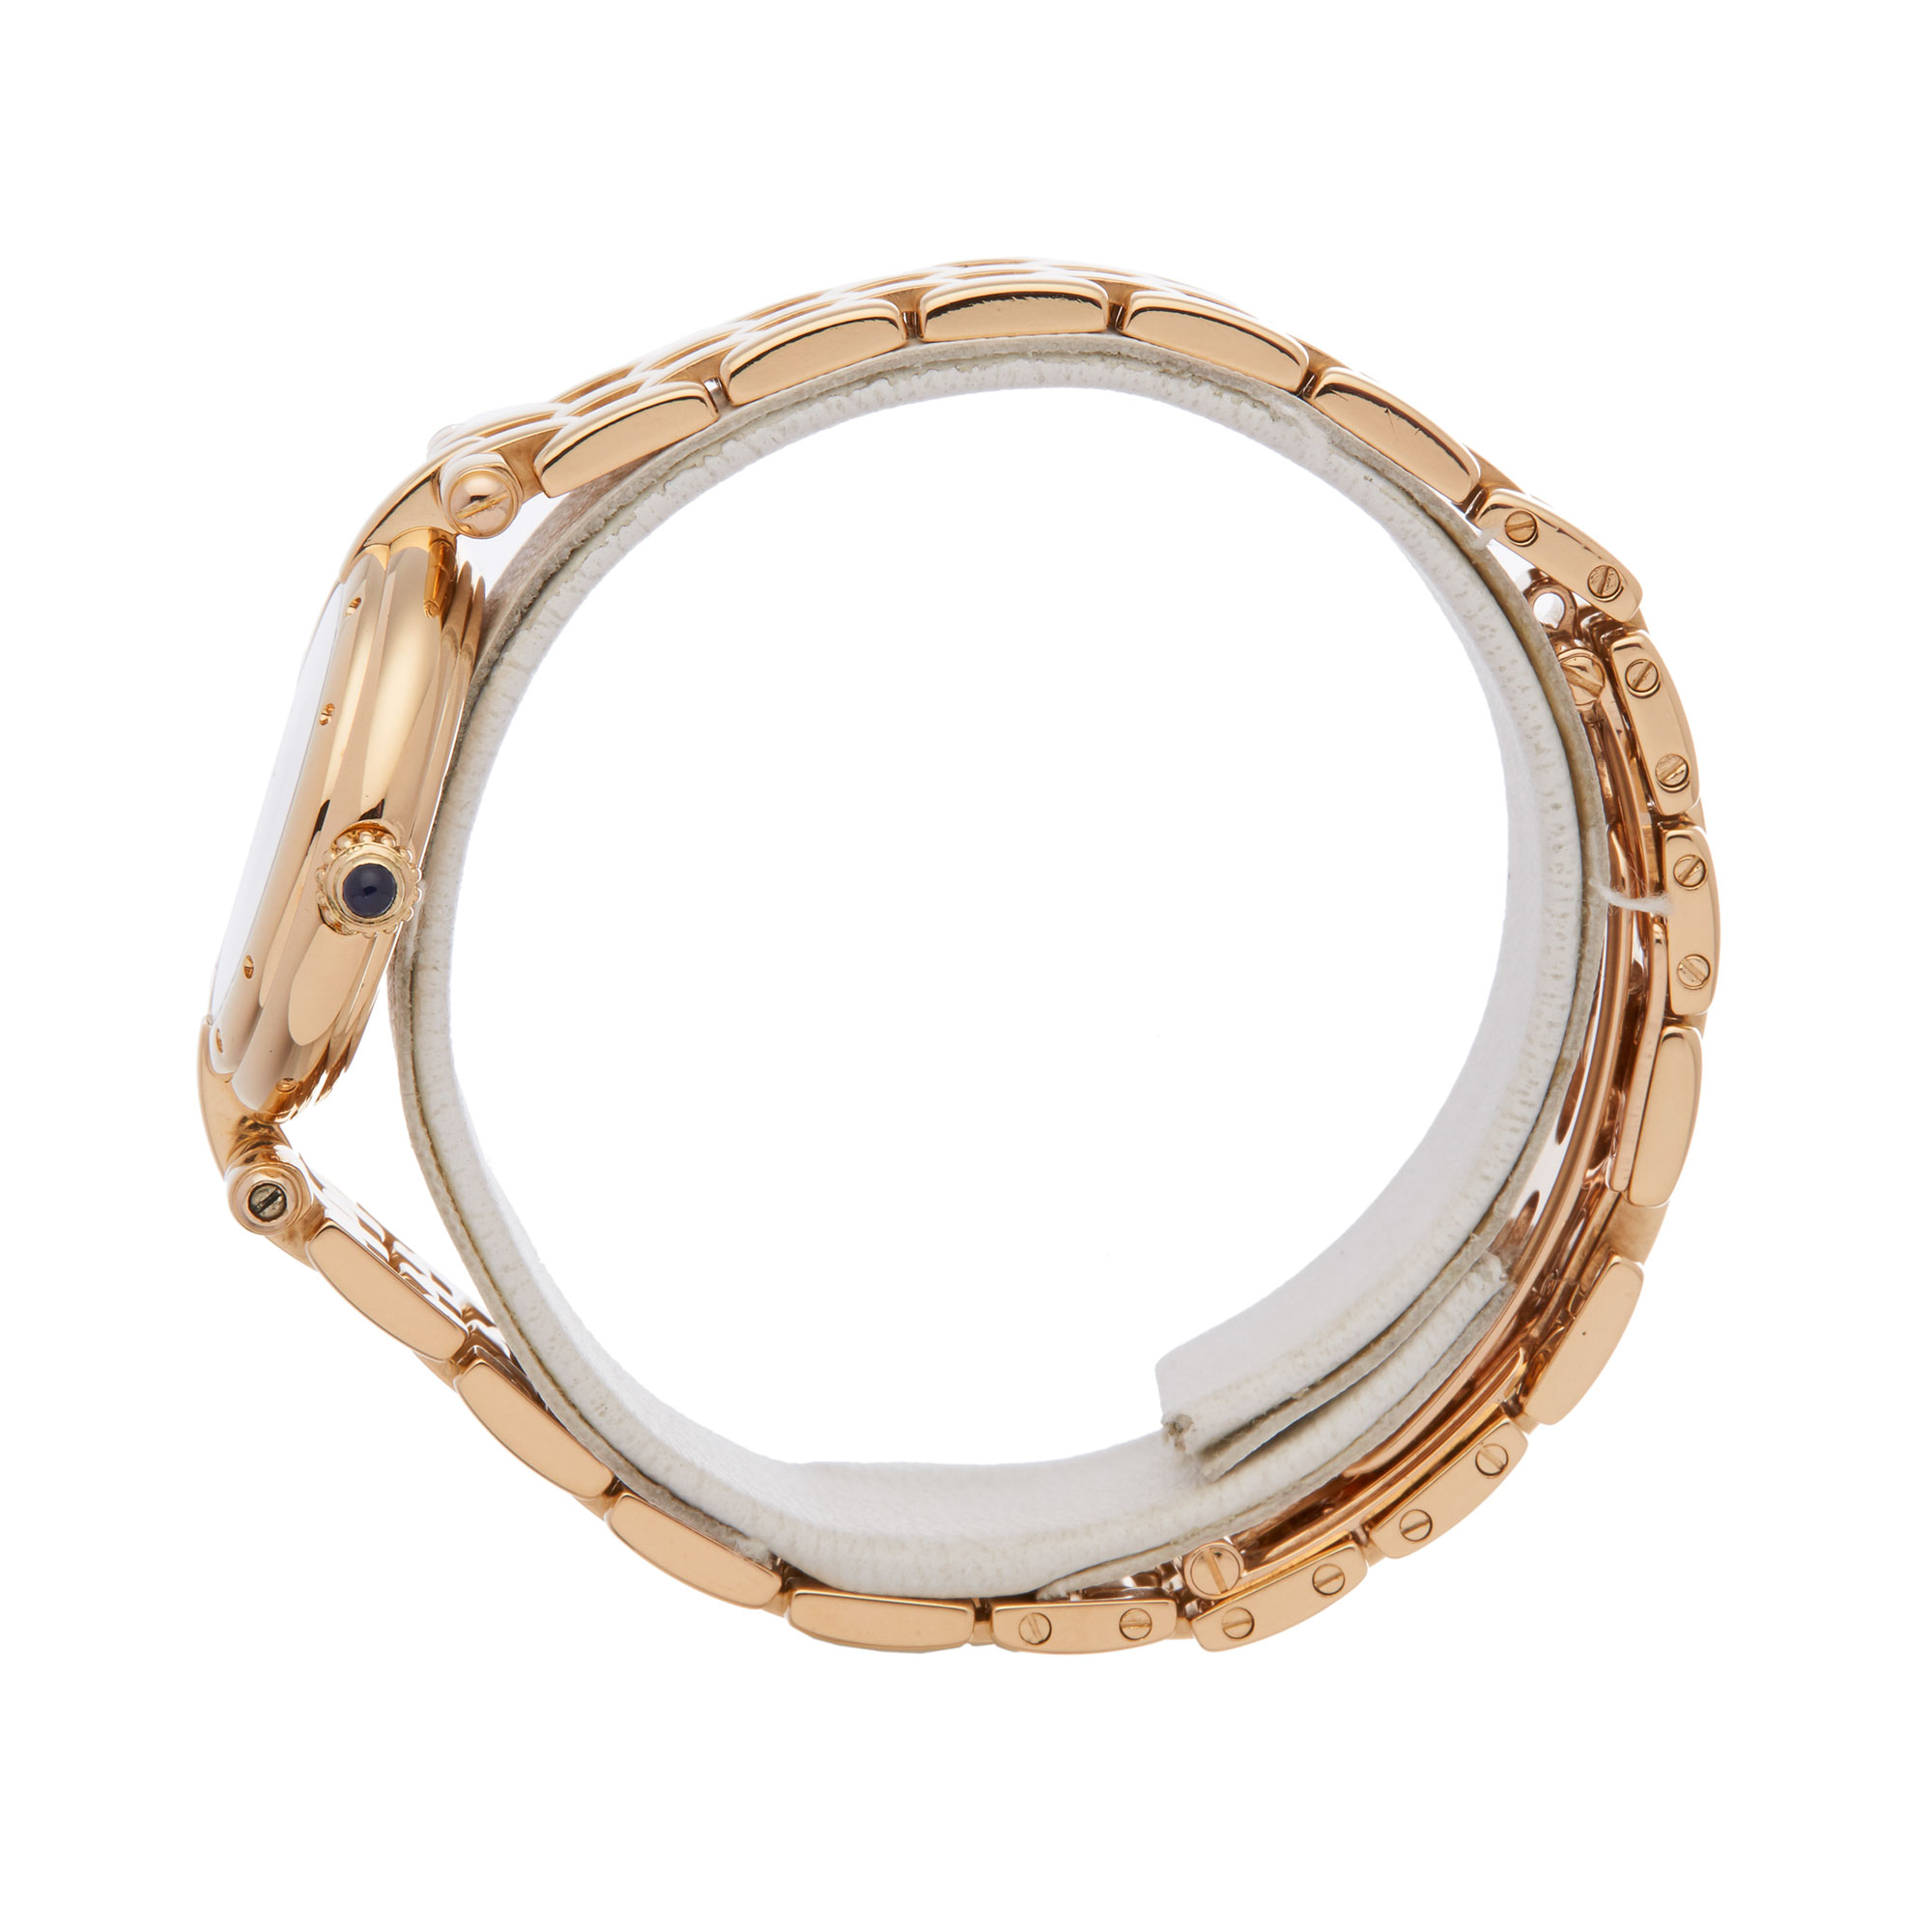 Cartier Panthère Vendome Ladies Yellow Gold Watch - Image 7 of 9